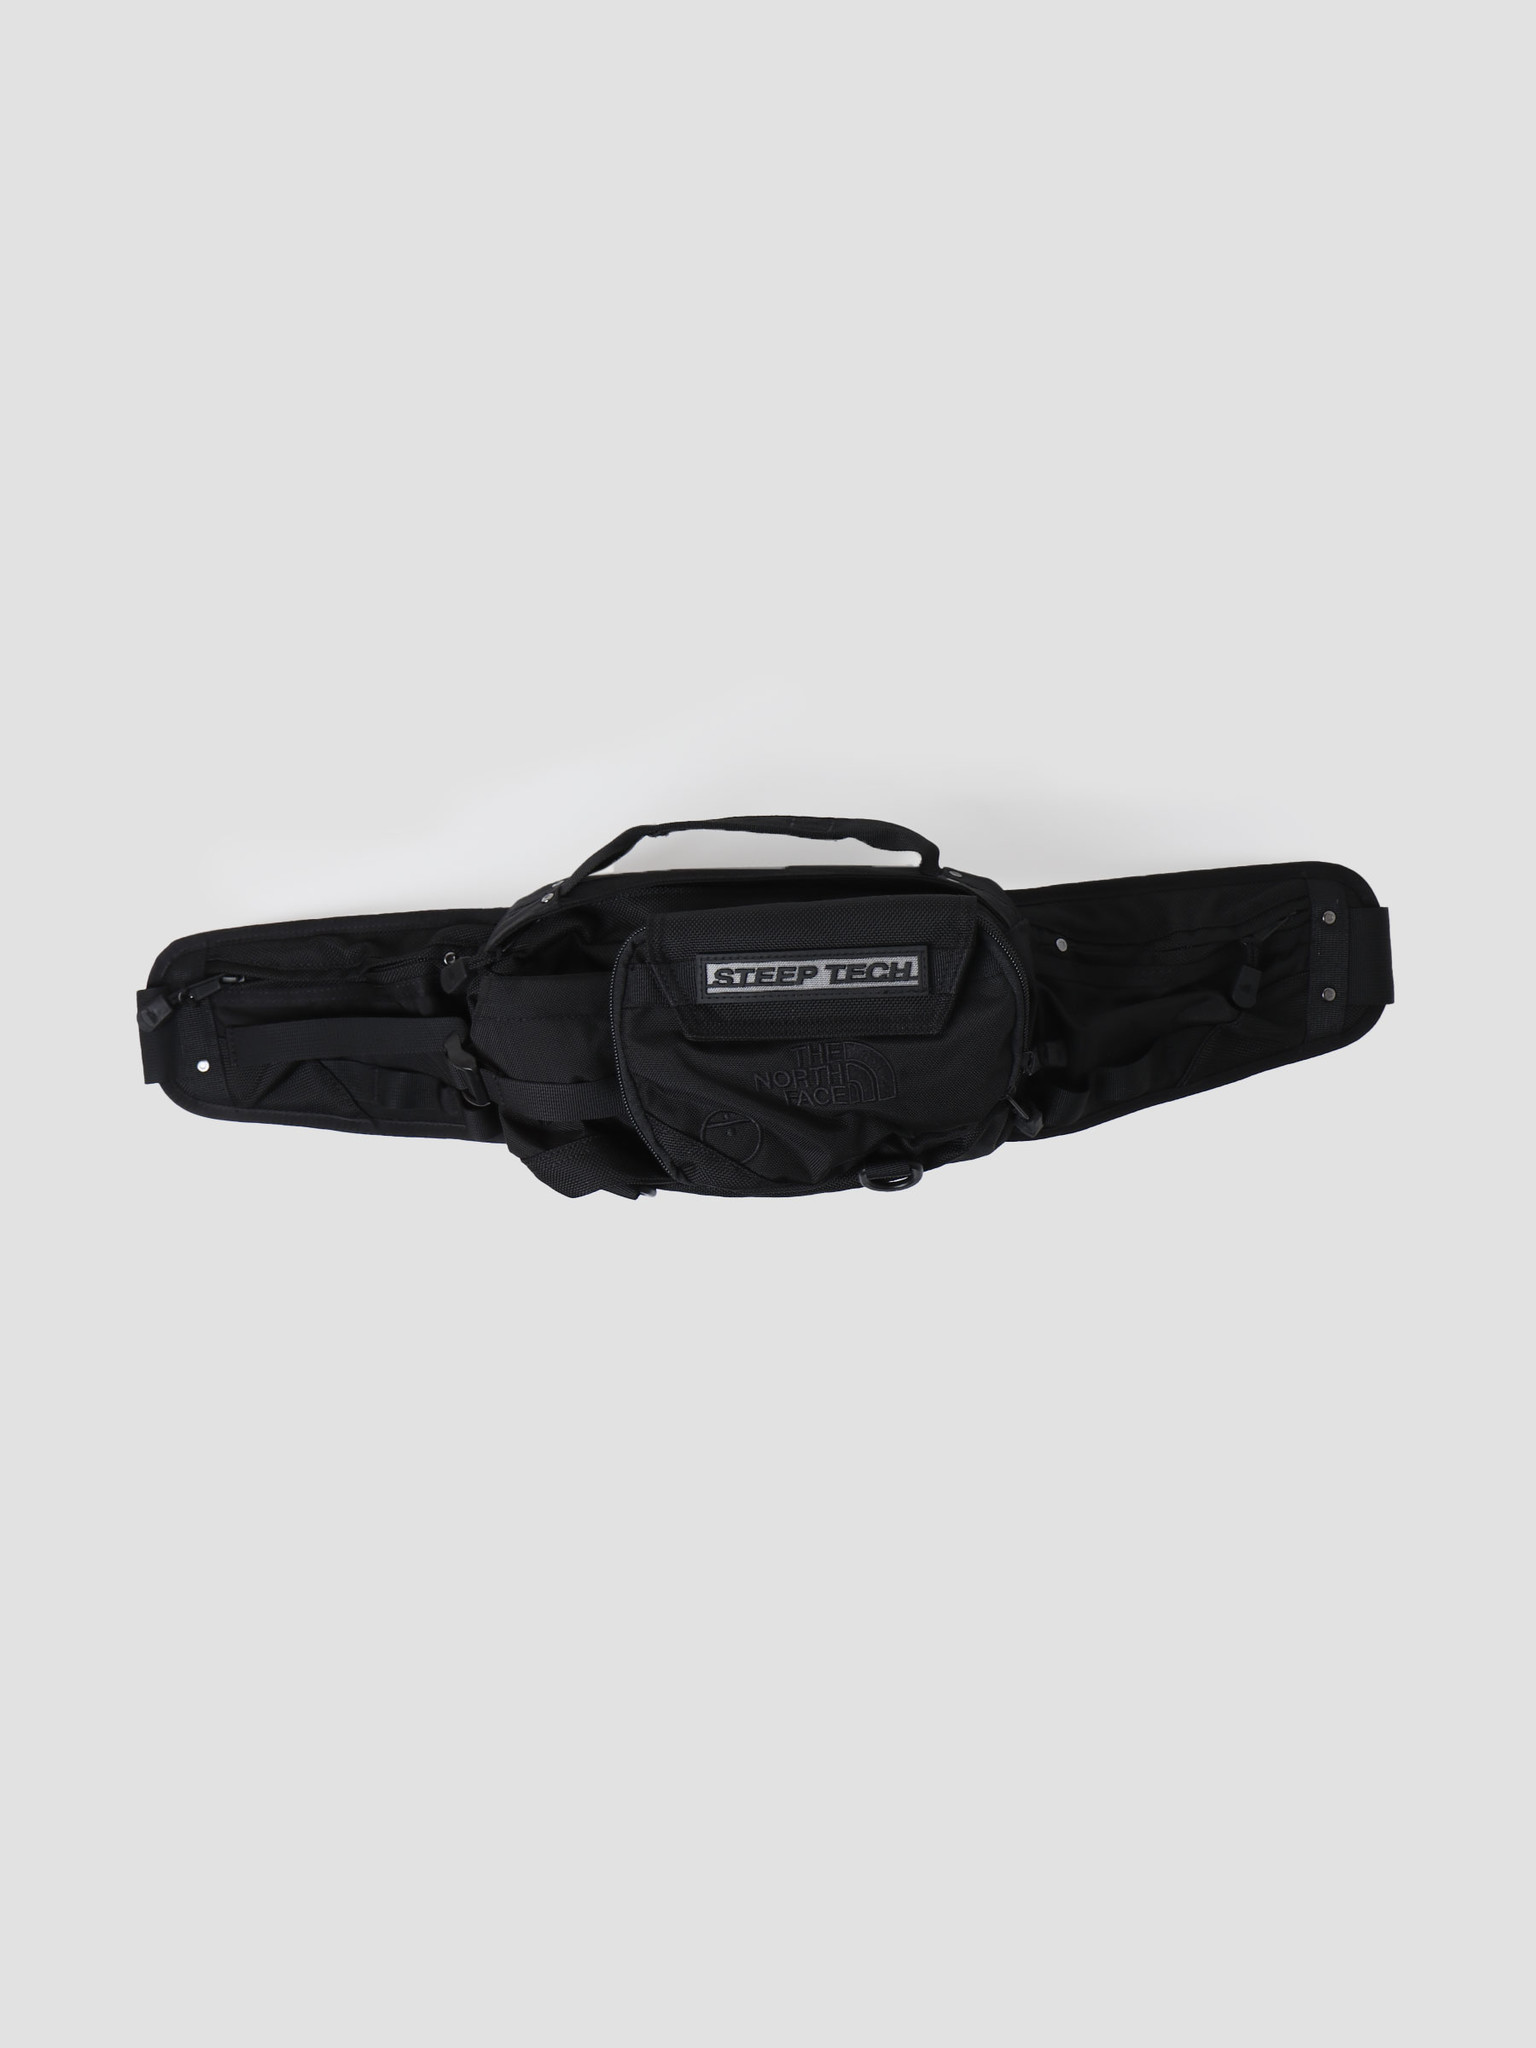 The North Face The North Face Steep Tech Fanny Pack Black NF0A4SJ4JK3